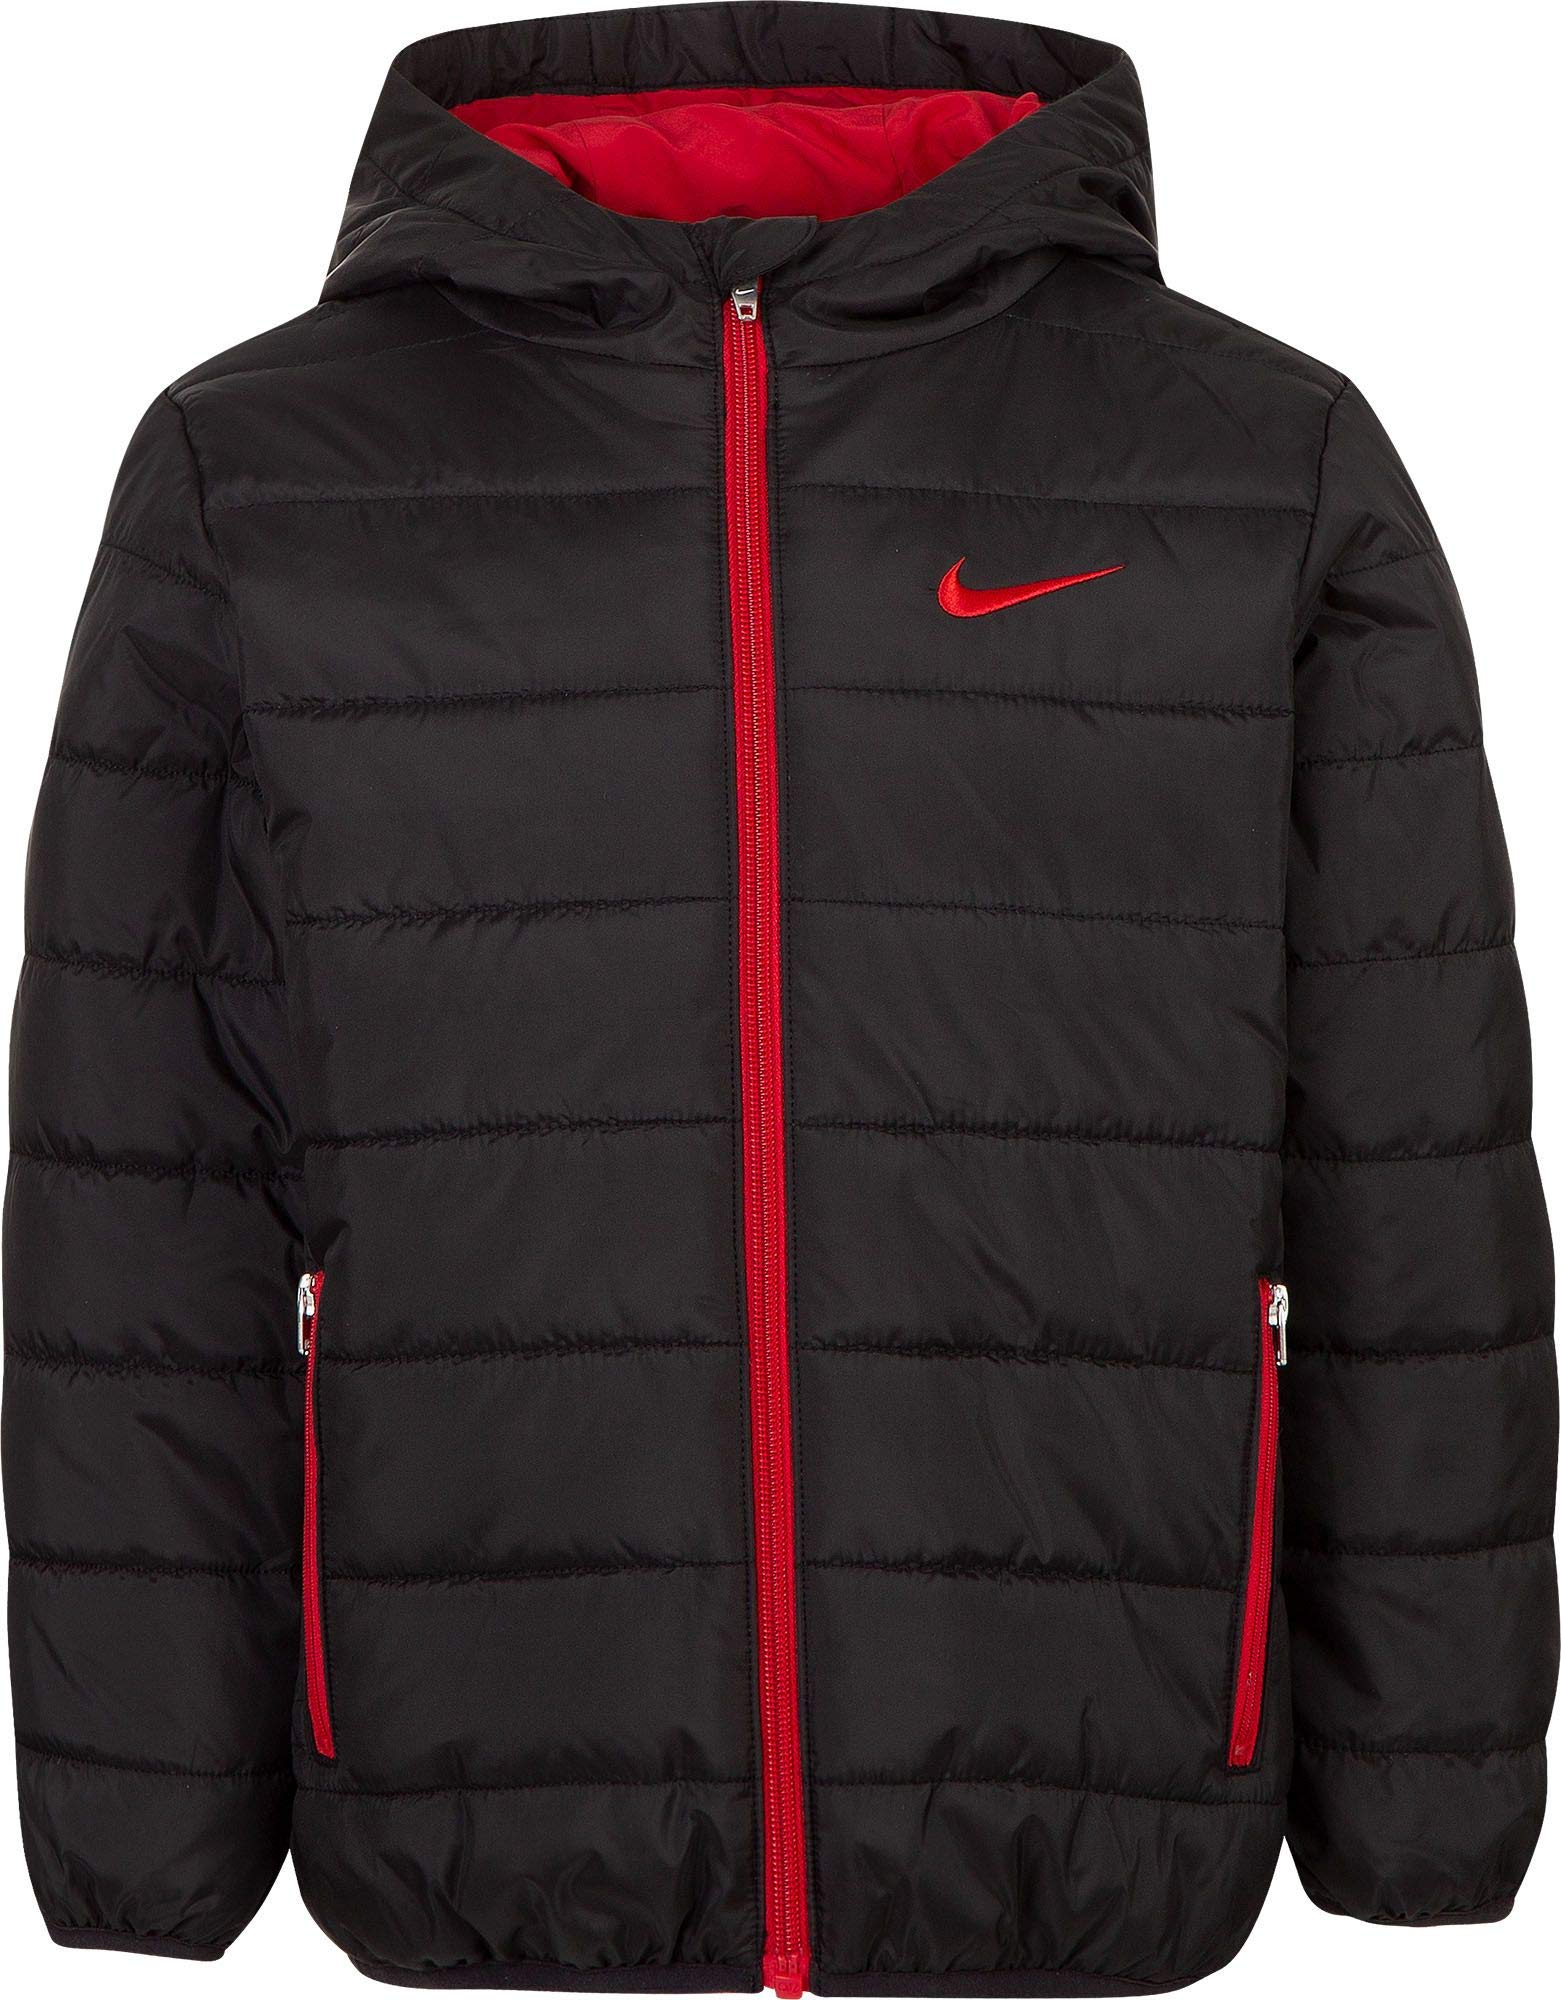 Nike Boy's Polyfill Quilted Insulated Puffer Jacket (Black, 4) by Nike (Image #1)